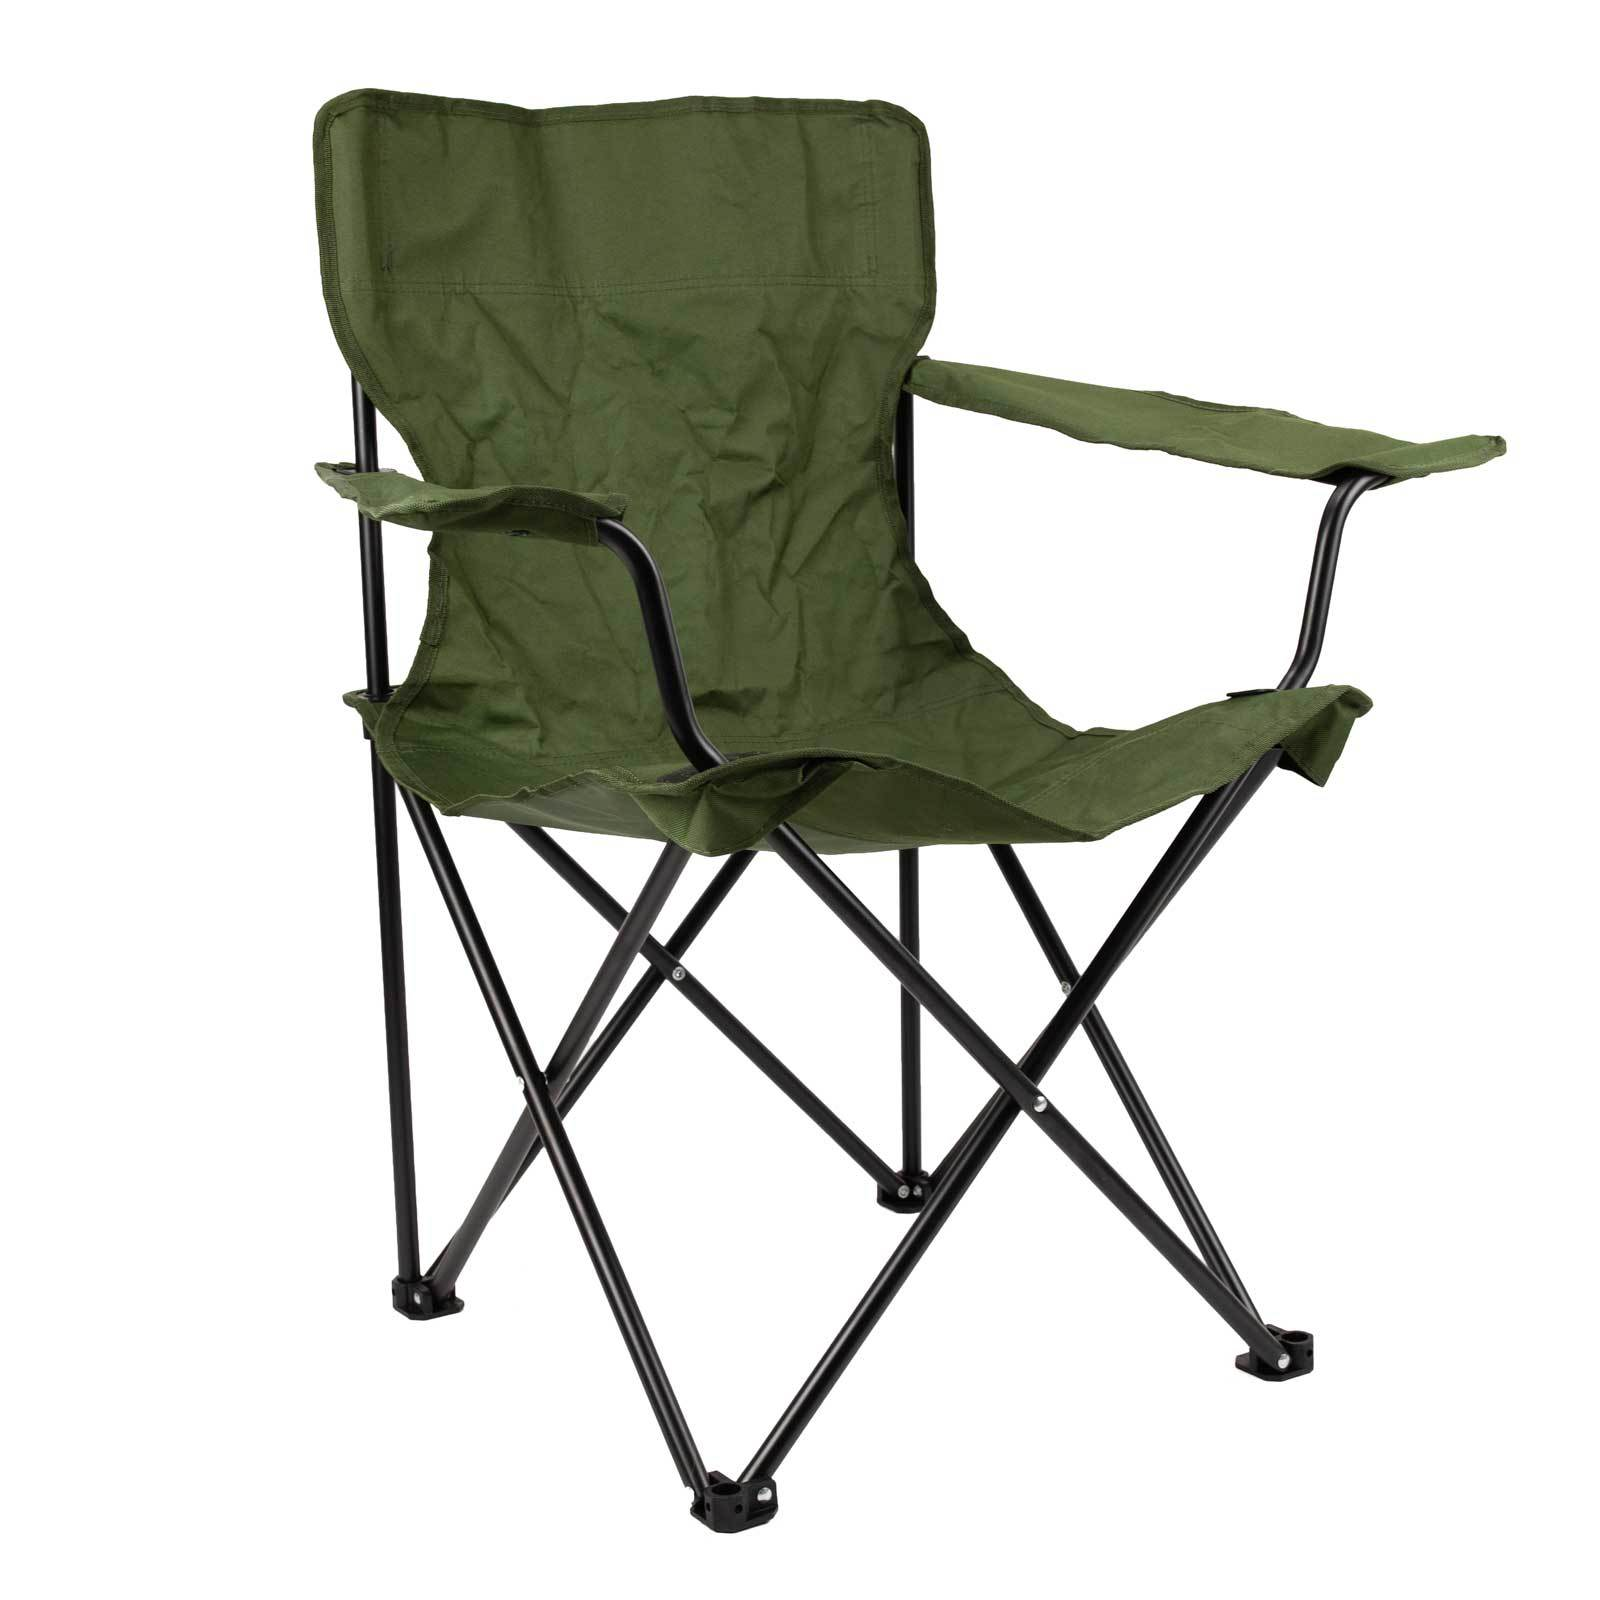 SwissLink British Army Issue Folding Chair